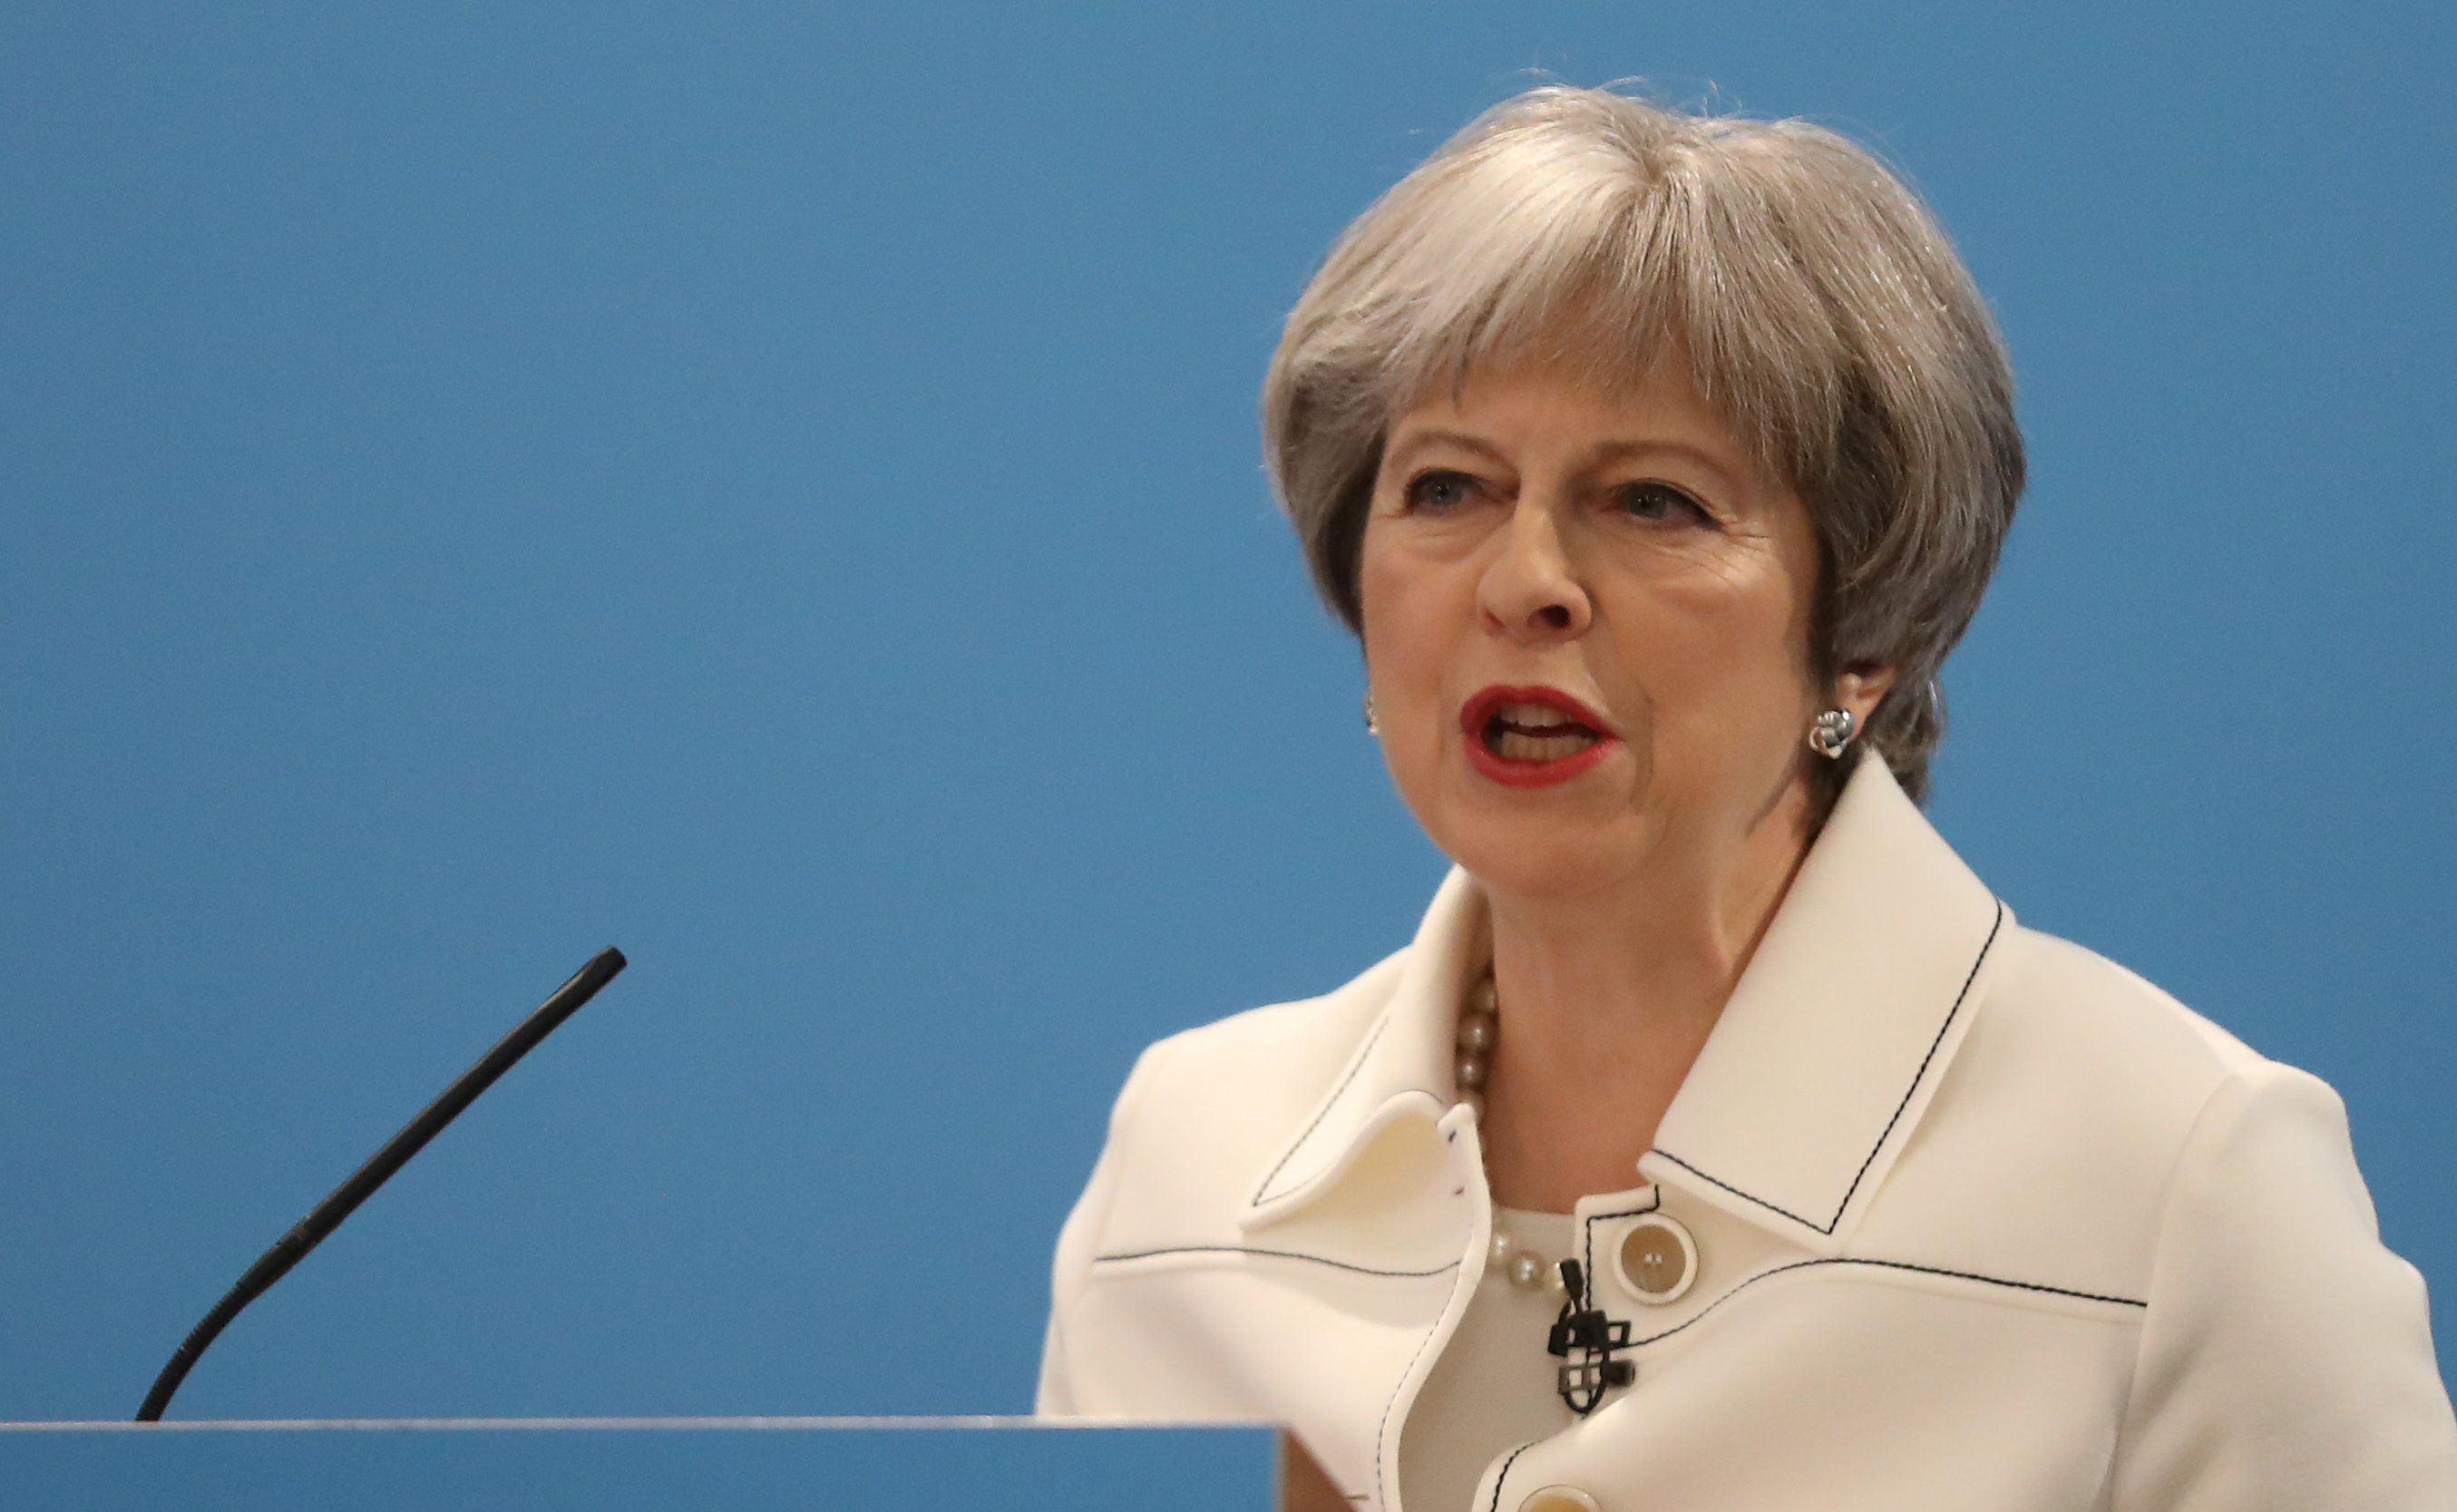 Theresa May: Voters do not trust Tories on public services